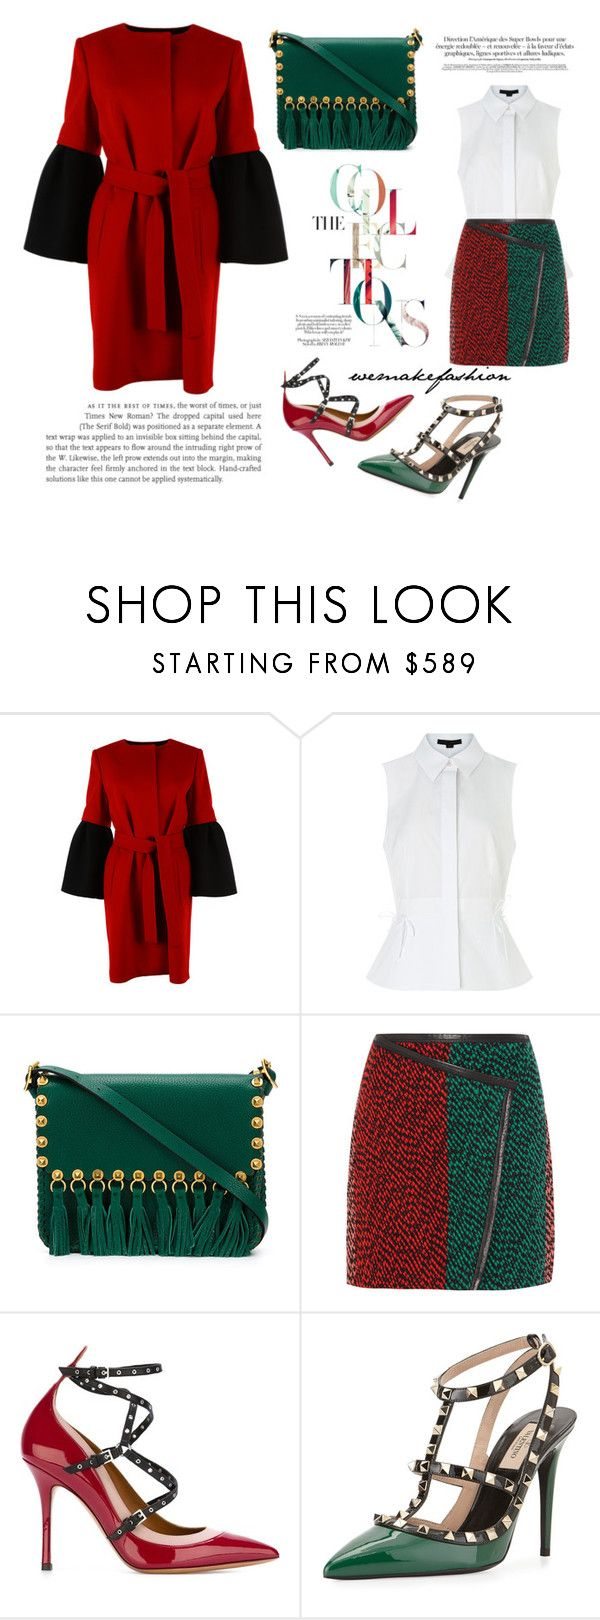 """""""Colors"""" by wemakefashion ❤ liked on Polyvore featuring Albino, Alexander Wang, Valentino, Fendi, women's clothing, women's fashion, women, female, woman and misses"""